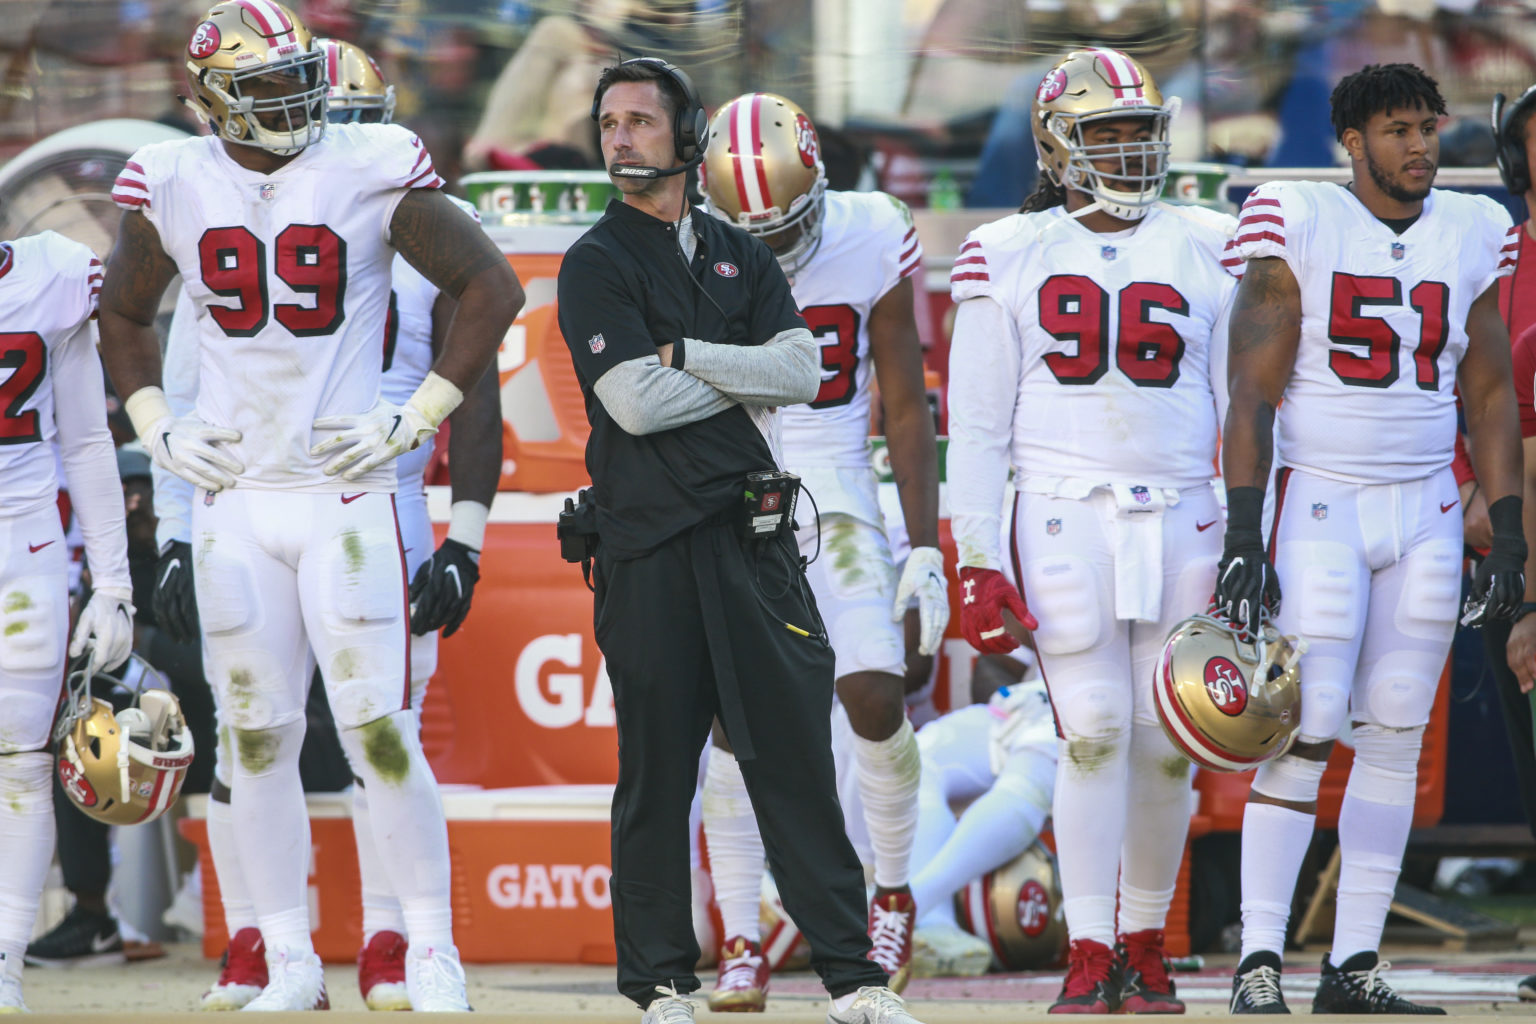 Head Coach Kyle Shanahan of the San Francisco 49ers paces during the game against the Los Angeles Rams at Levi's Stadium on October 21, 2018 in Santa Clara, California. (Chris Victorio / Special to S.F. Examiner)